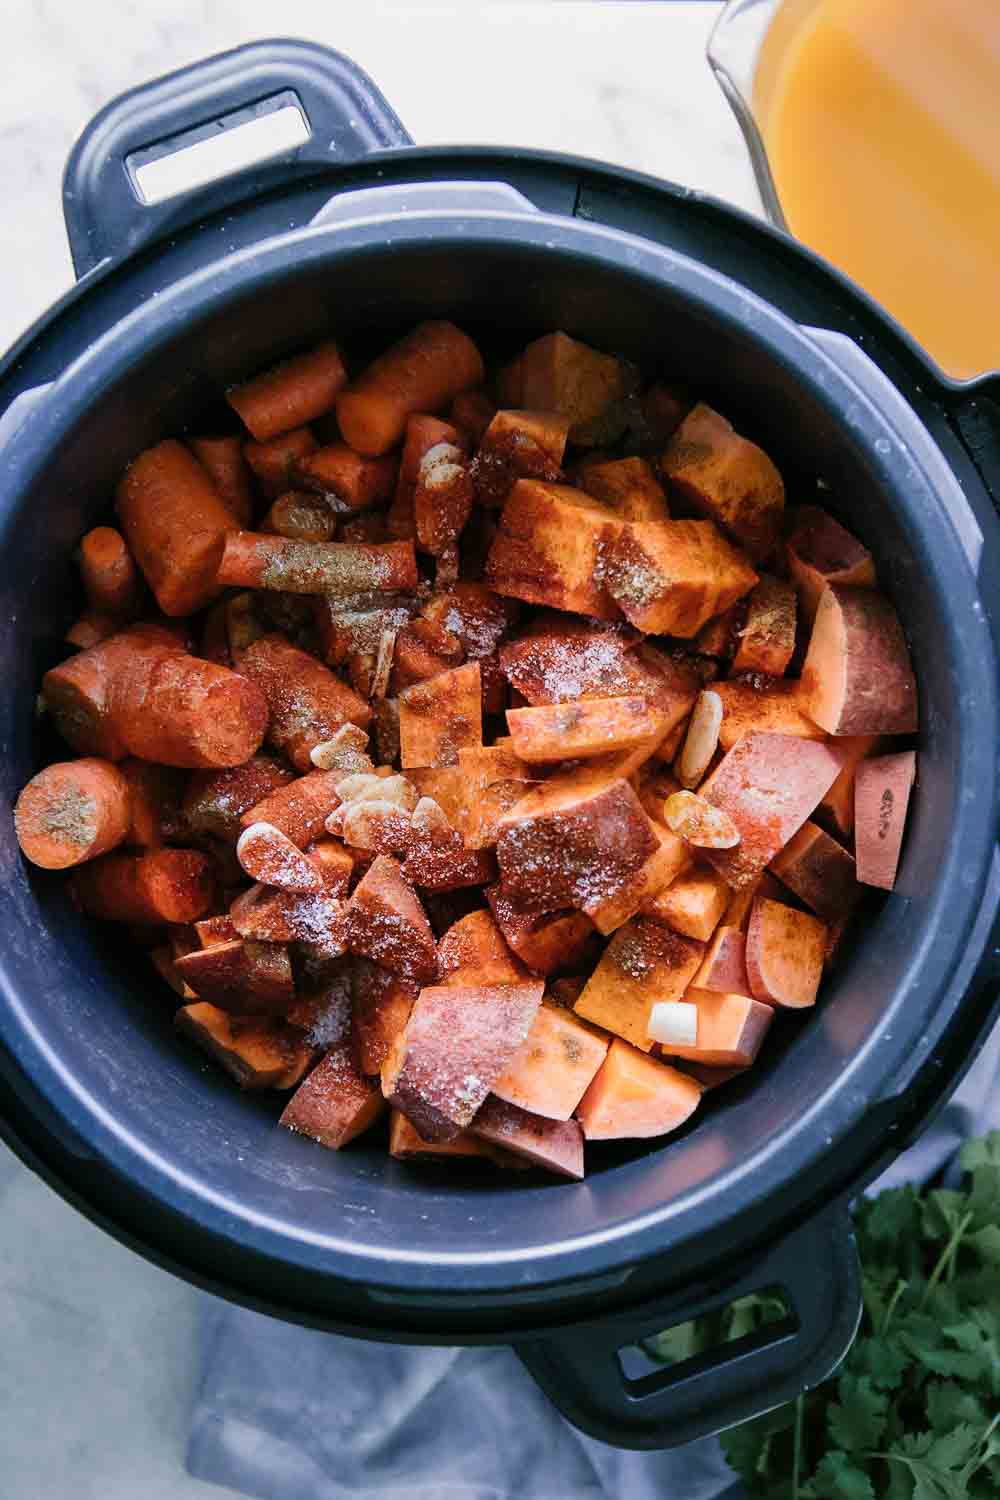 chopped sweet potatoes, carrots, and spices in an Instant Pot or pressure cooker